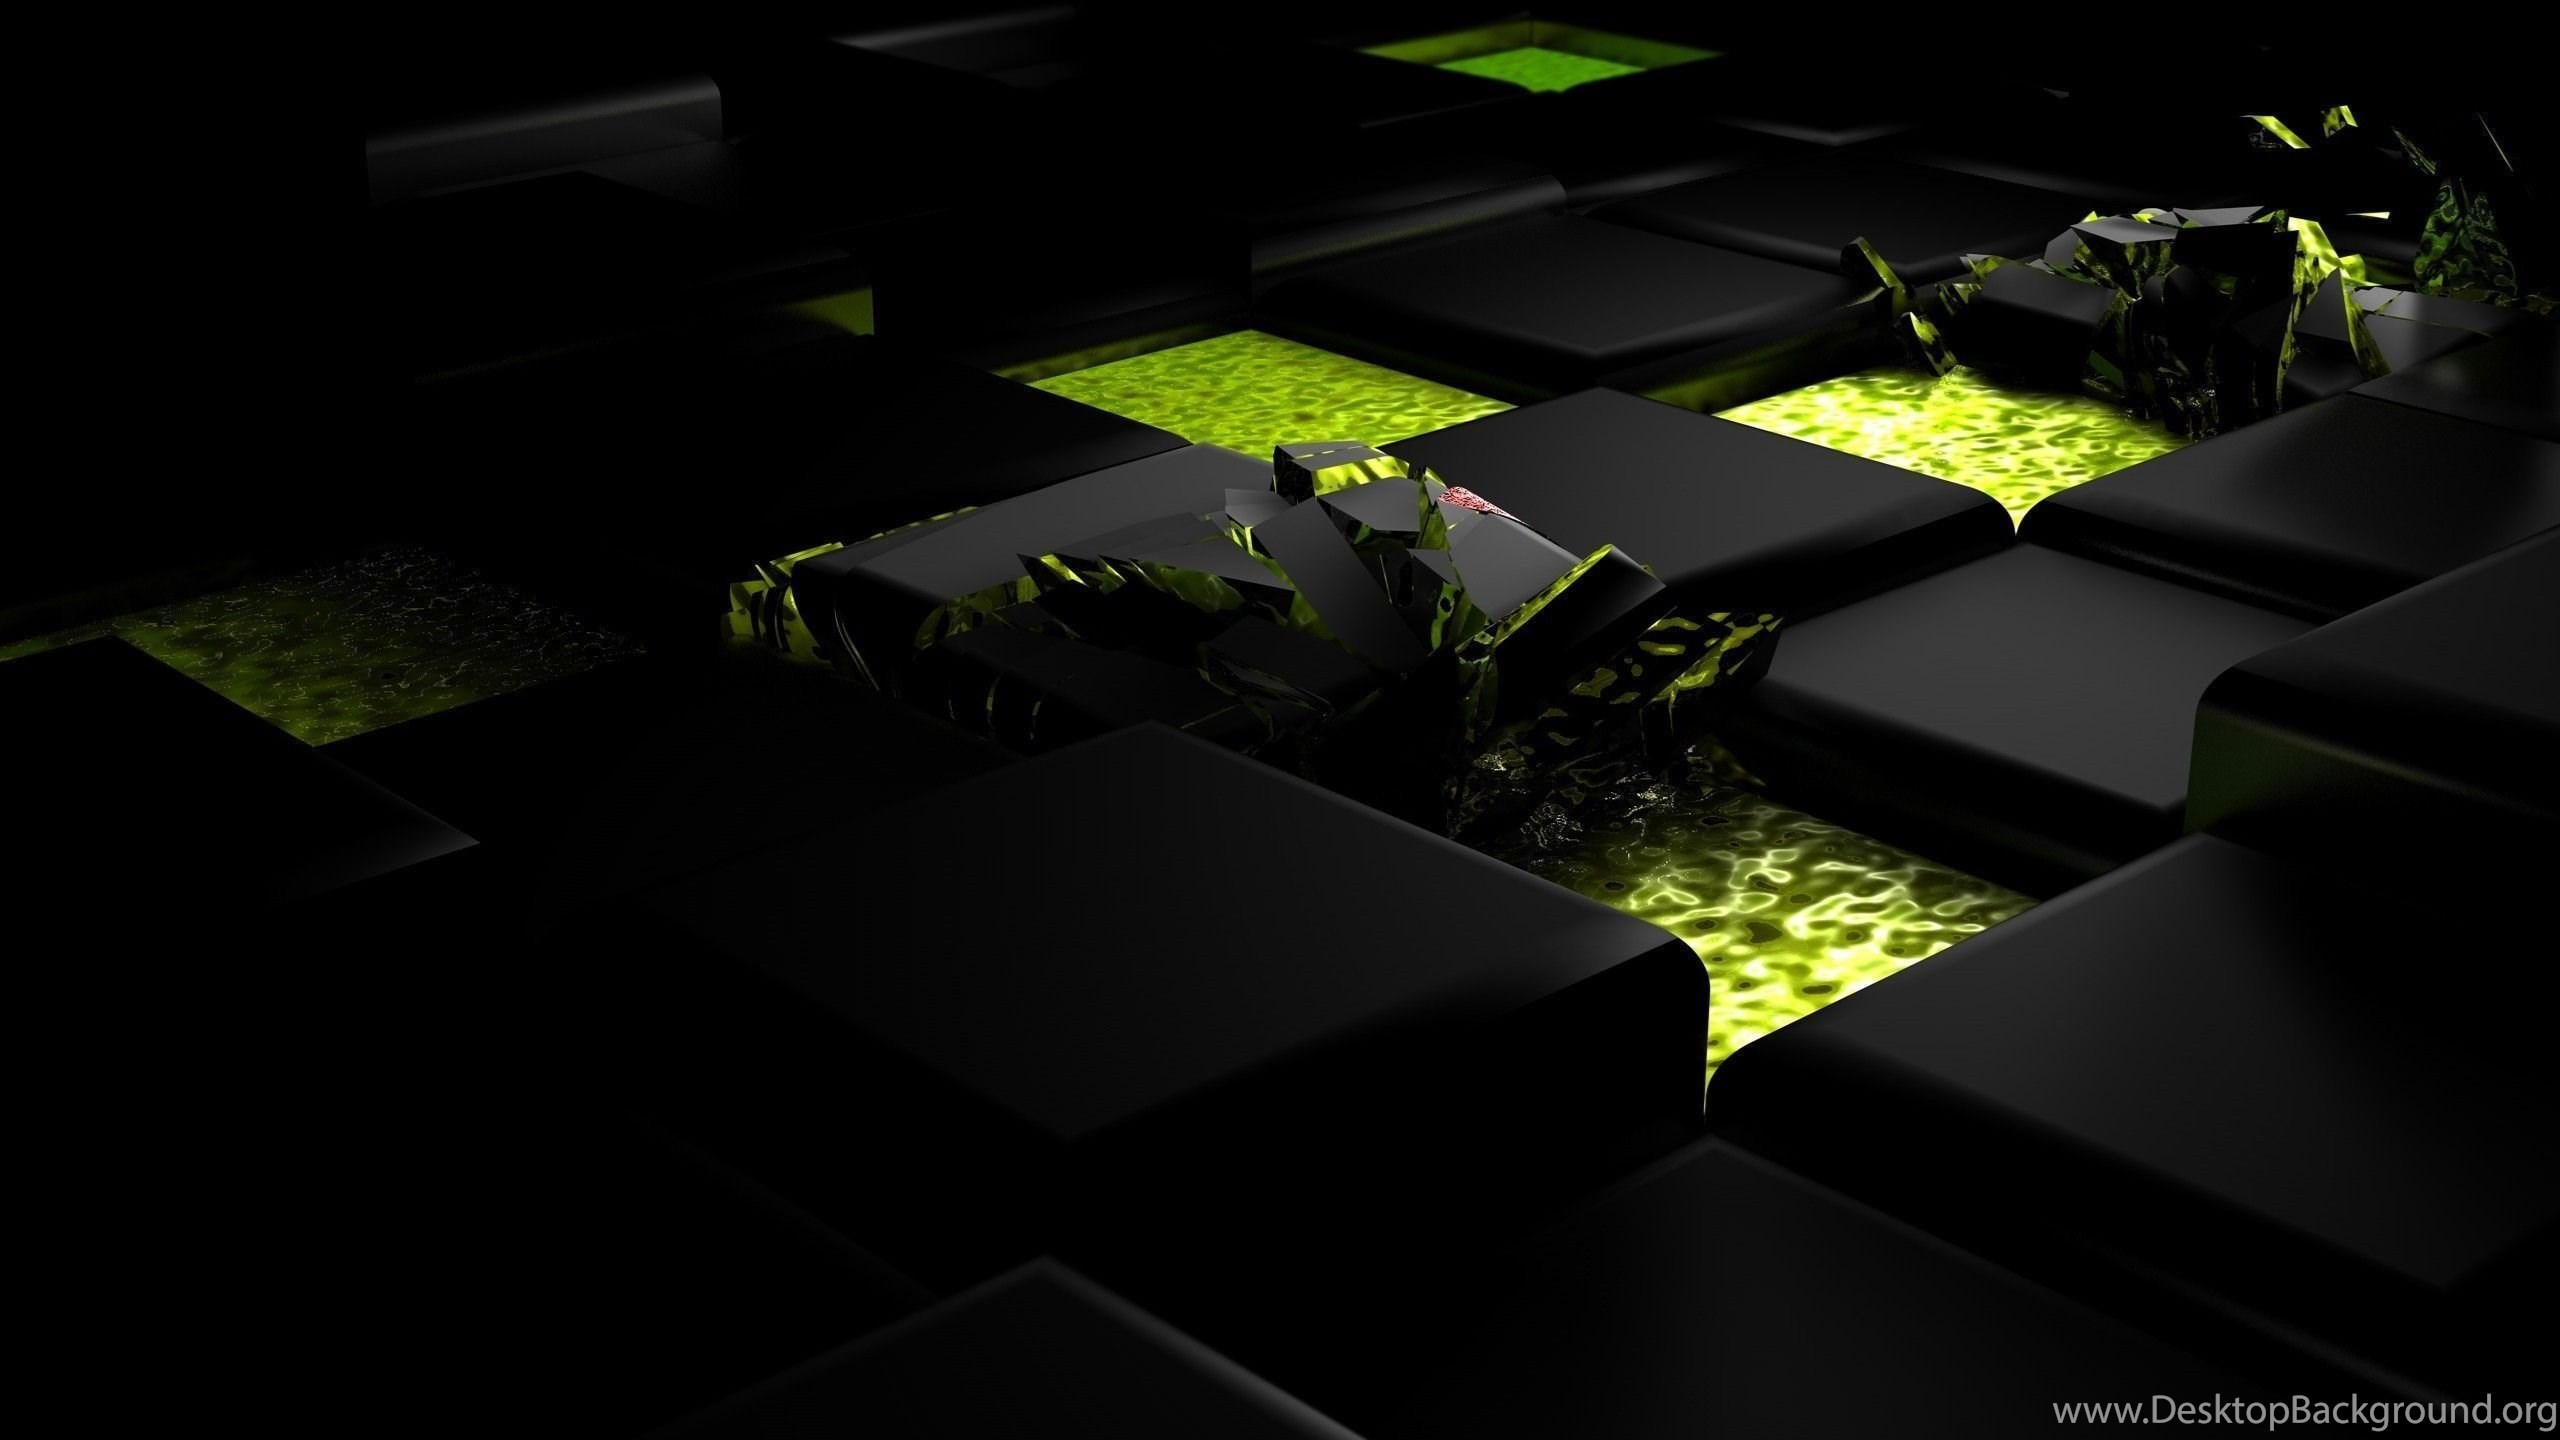 Cube Wallpapers 3d Wallpapers Desktop Background